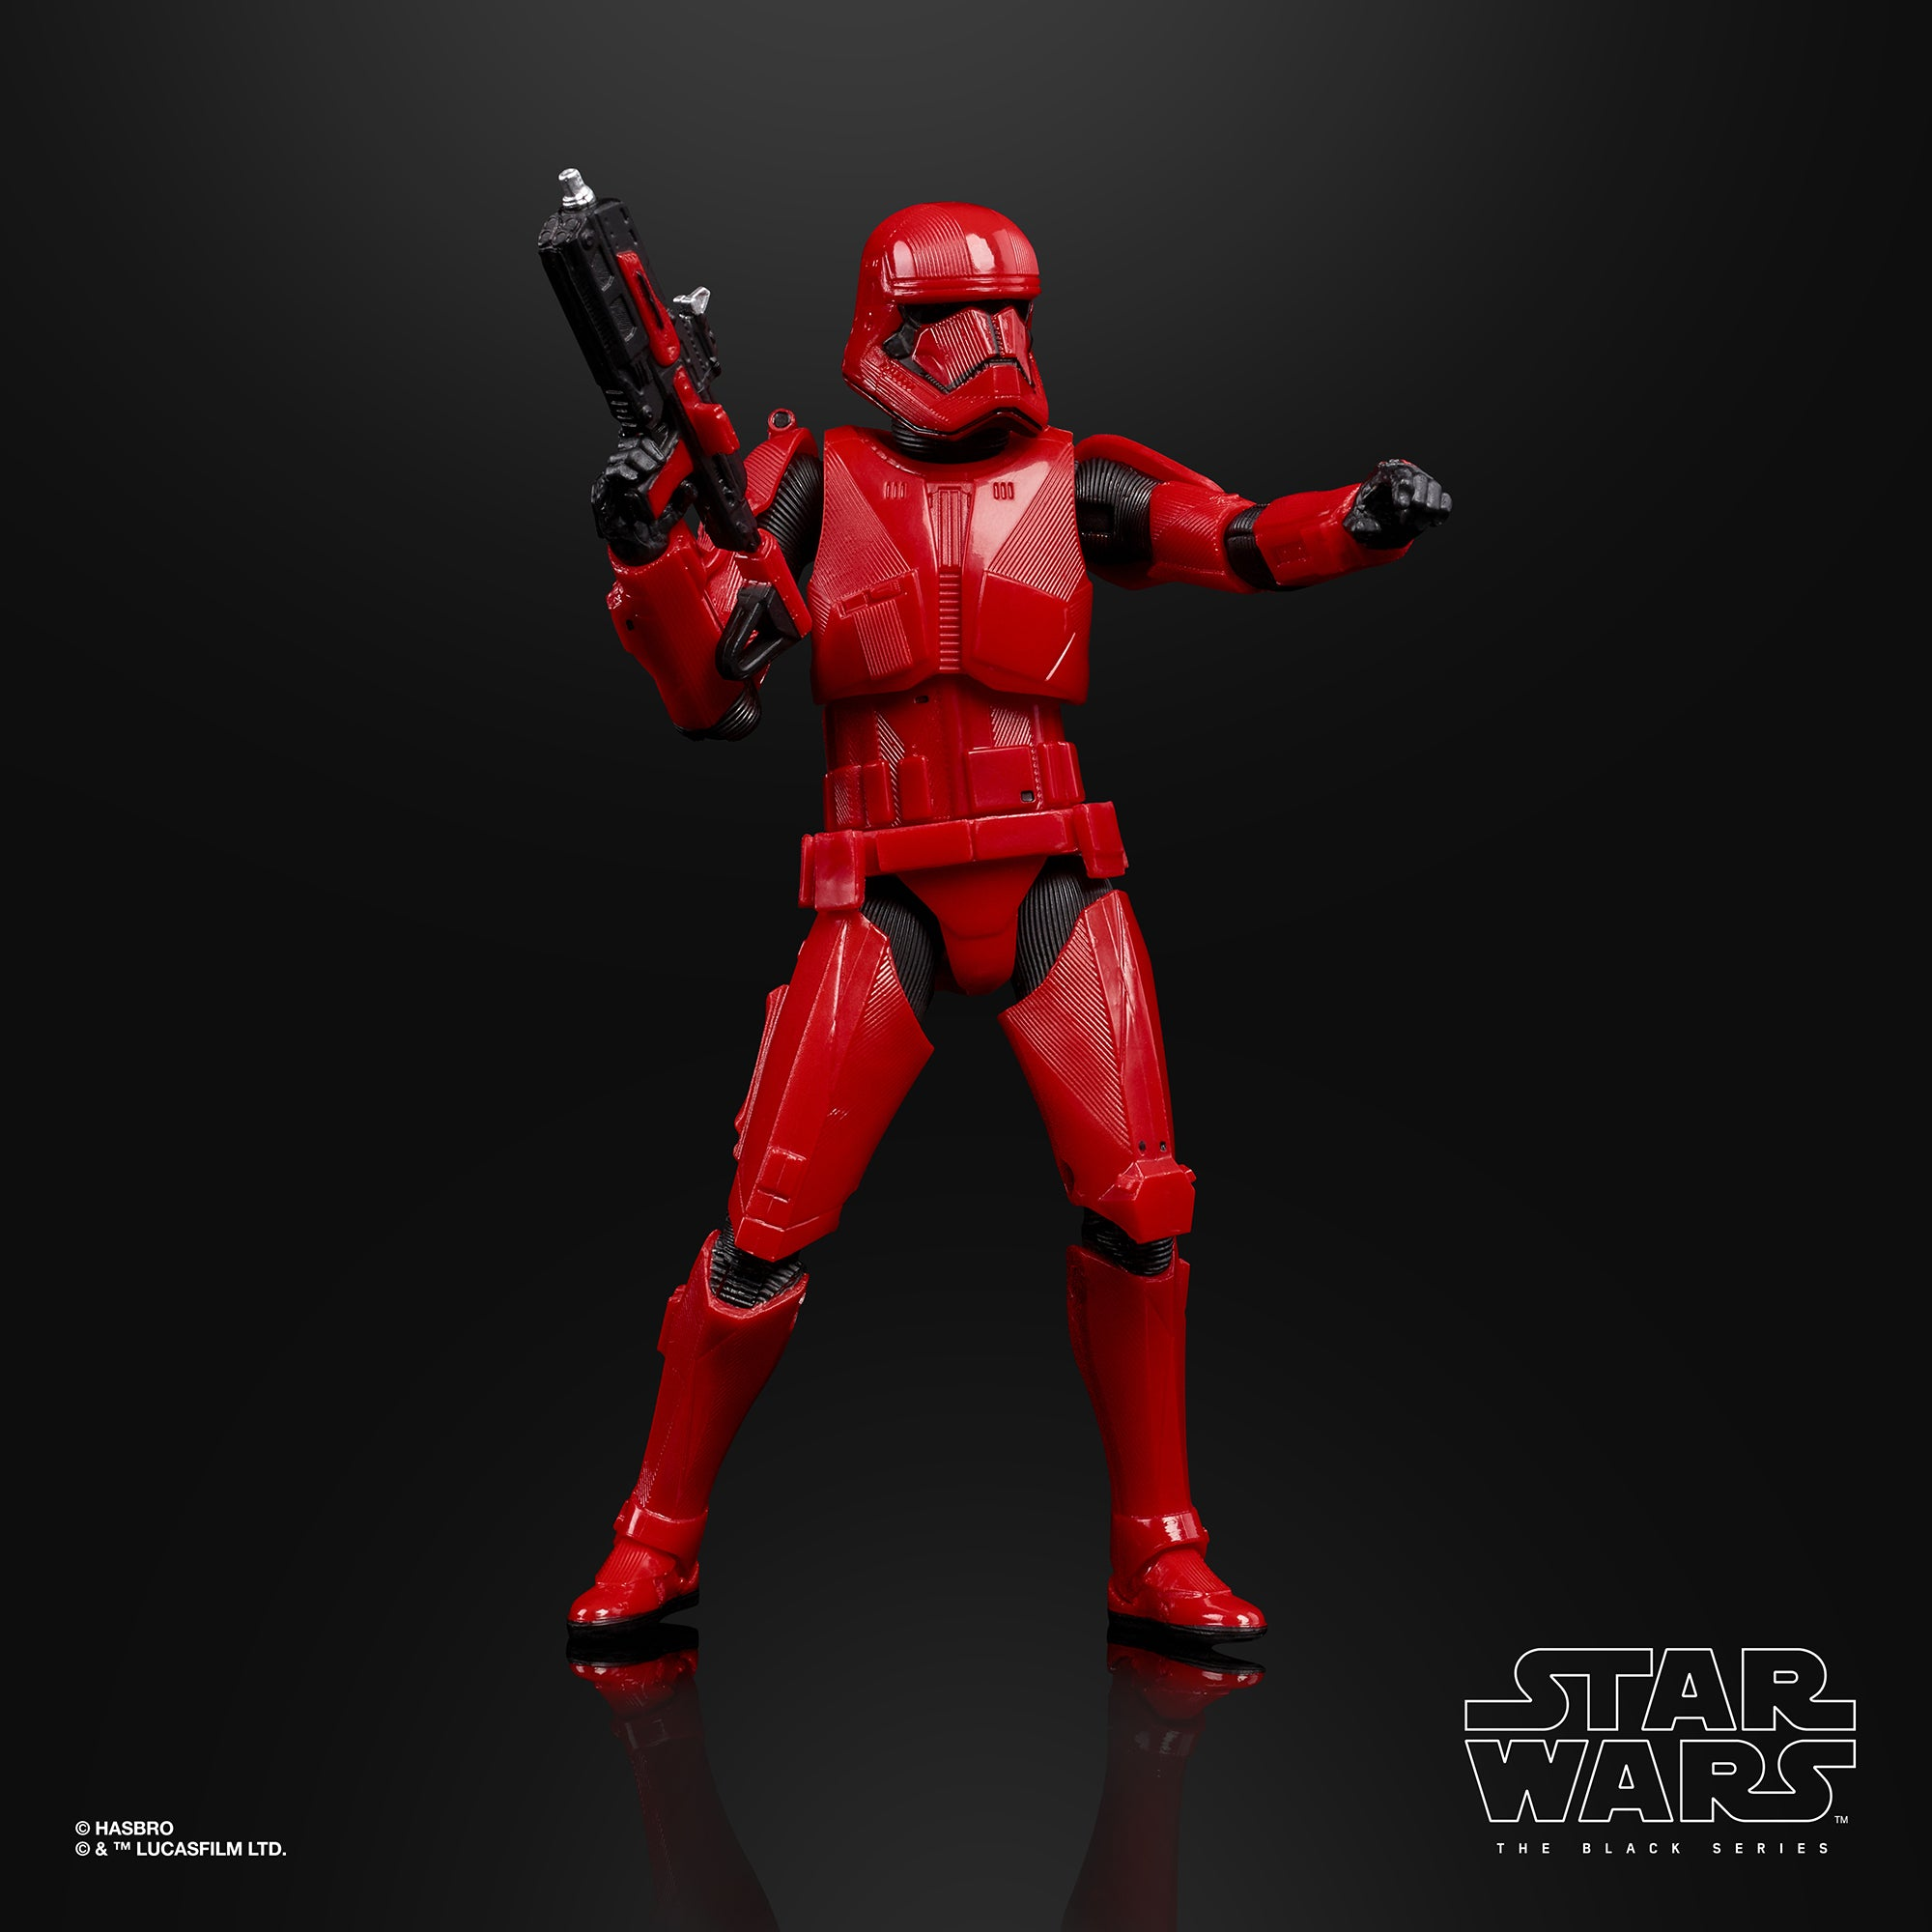 Star Wars The Black Series Sith Trooper Figure